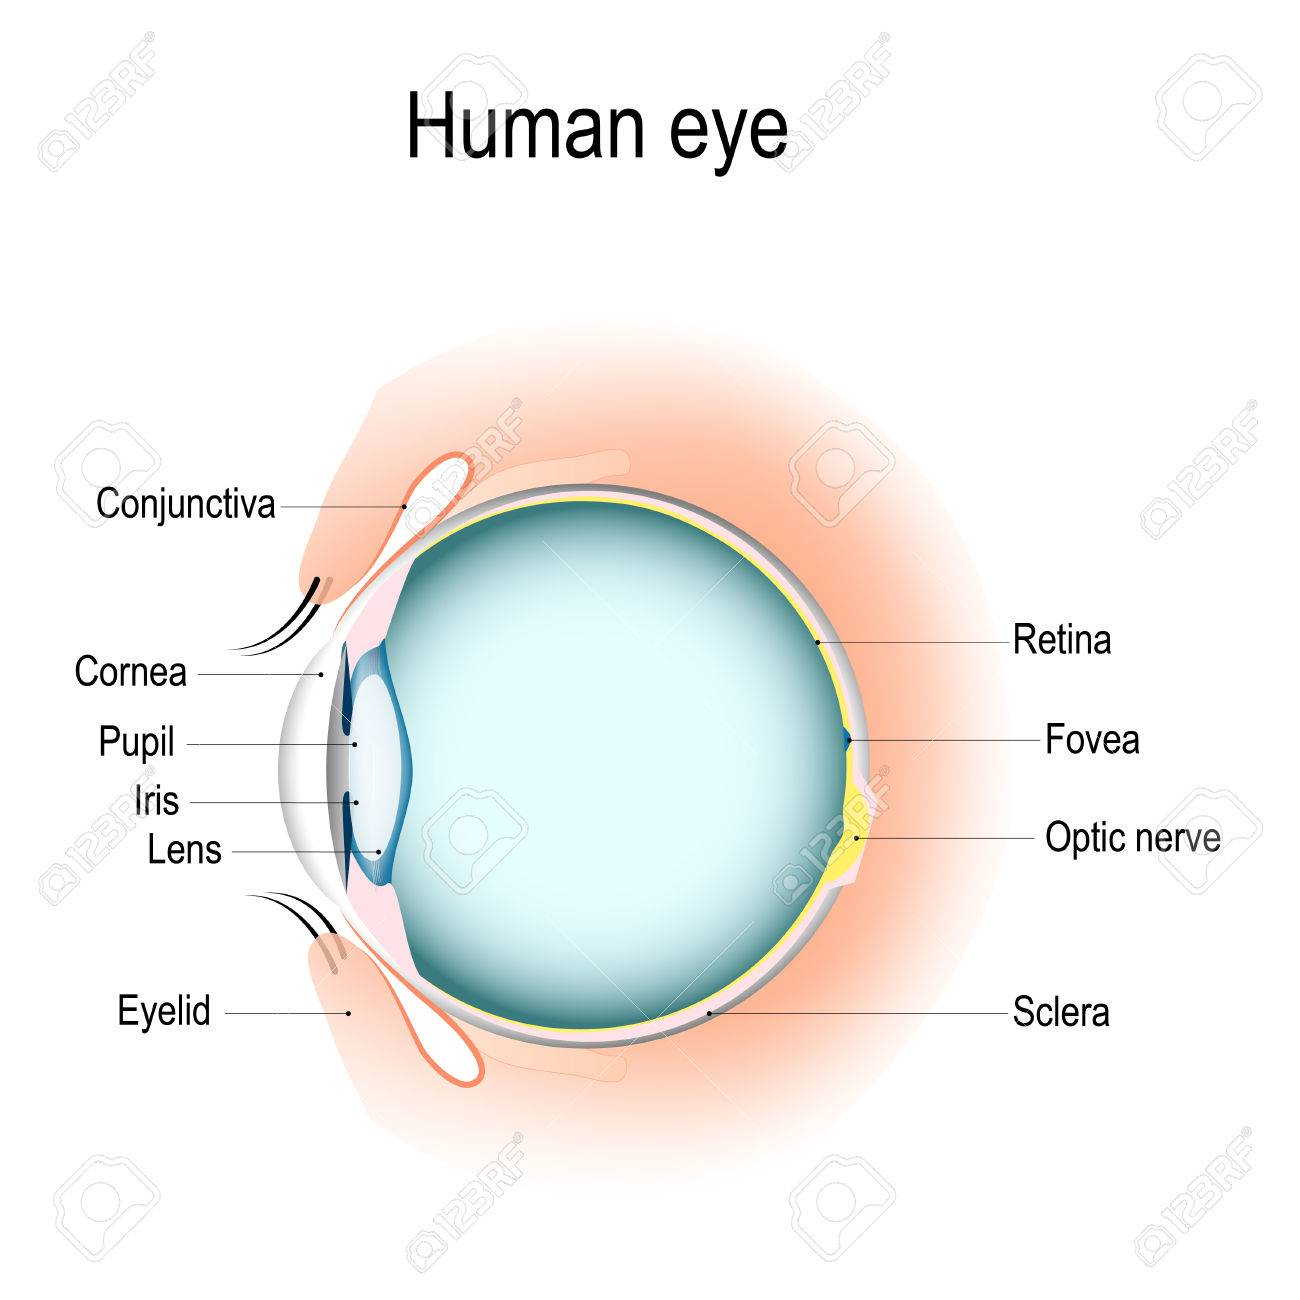 Anatomy of the eye, vertical section of the eye and eyelids... on cross section of the eye, flowchart of the eye, schematic eye retinoscopy, sagittal section of the eye, schematic section of the human eye, cutaway view of the eye, midsagittal section of the eye, transverse section of the eye, cross section diagram of eye,